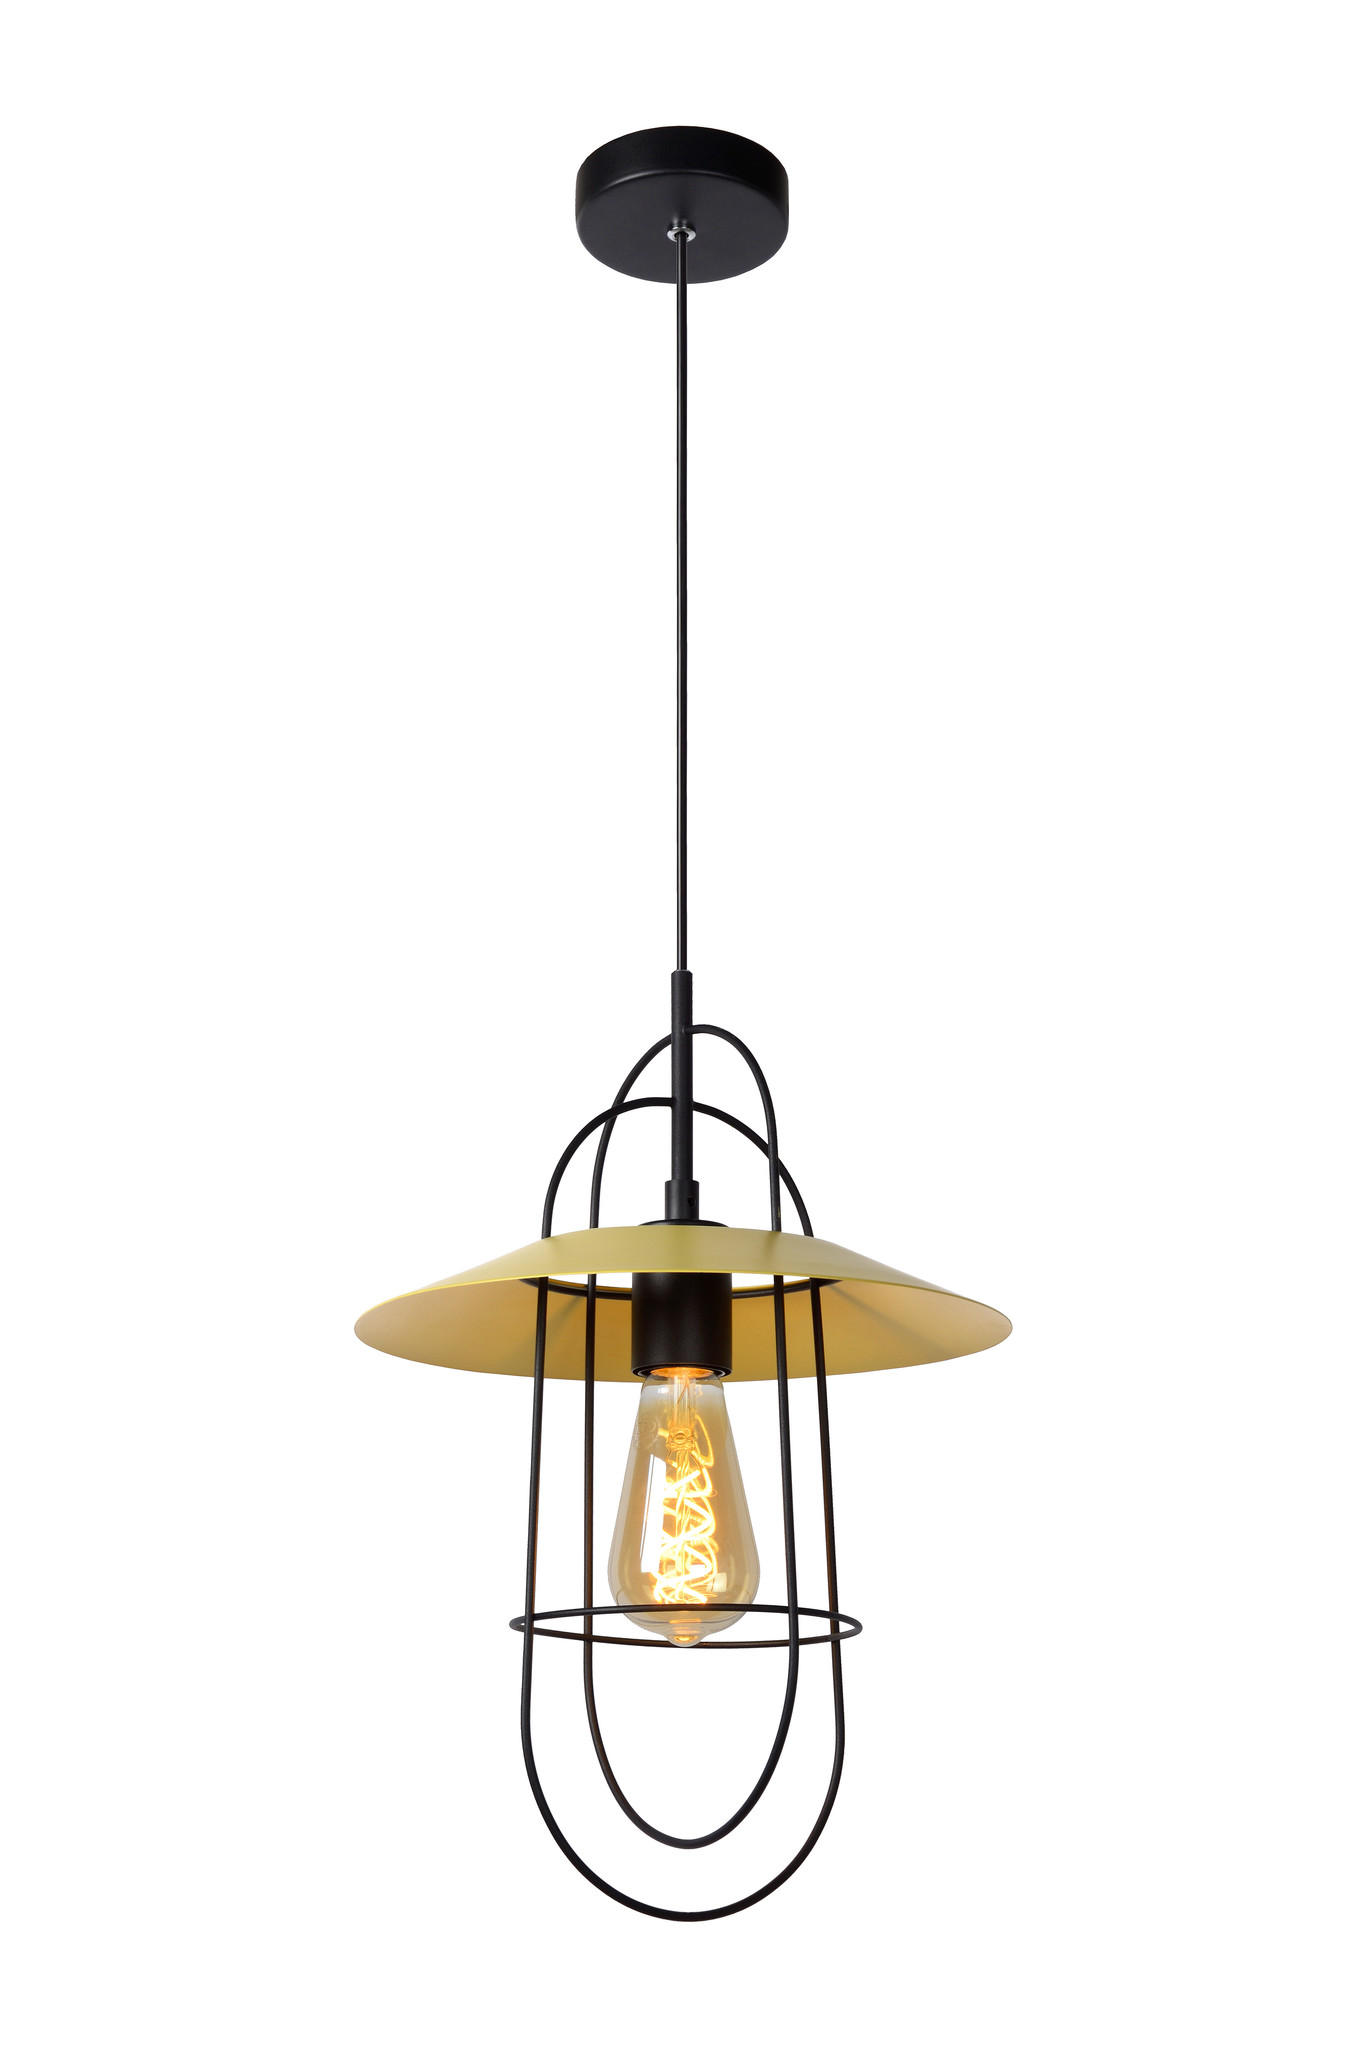 Lucide MASSON Hanglamp-Geel-Ø28-1xE27-40W-Staal